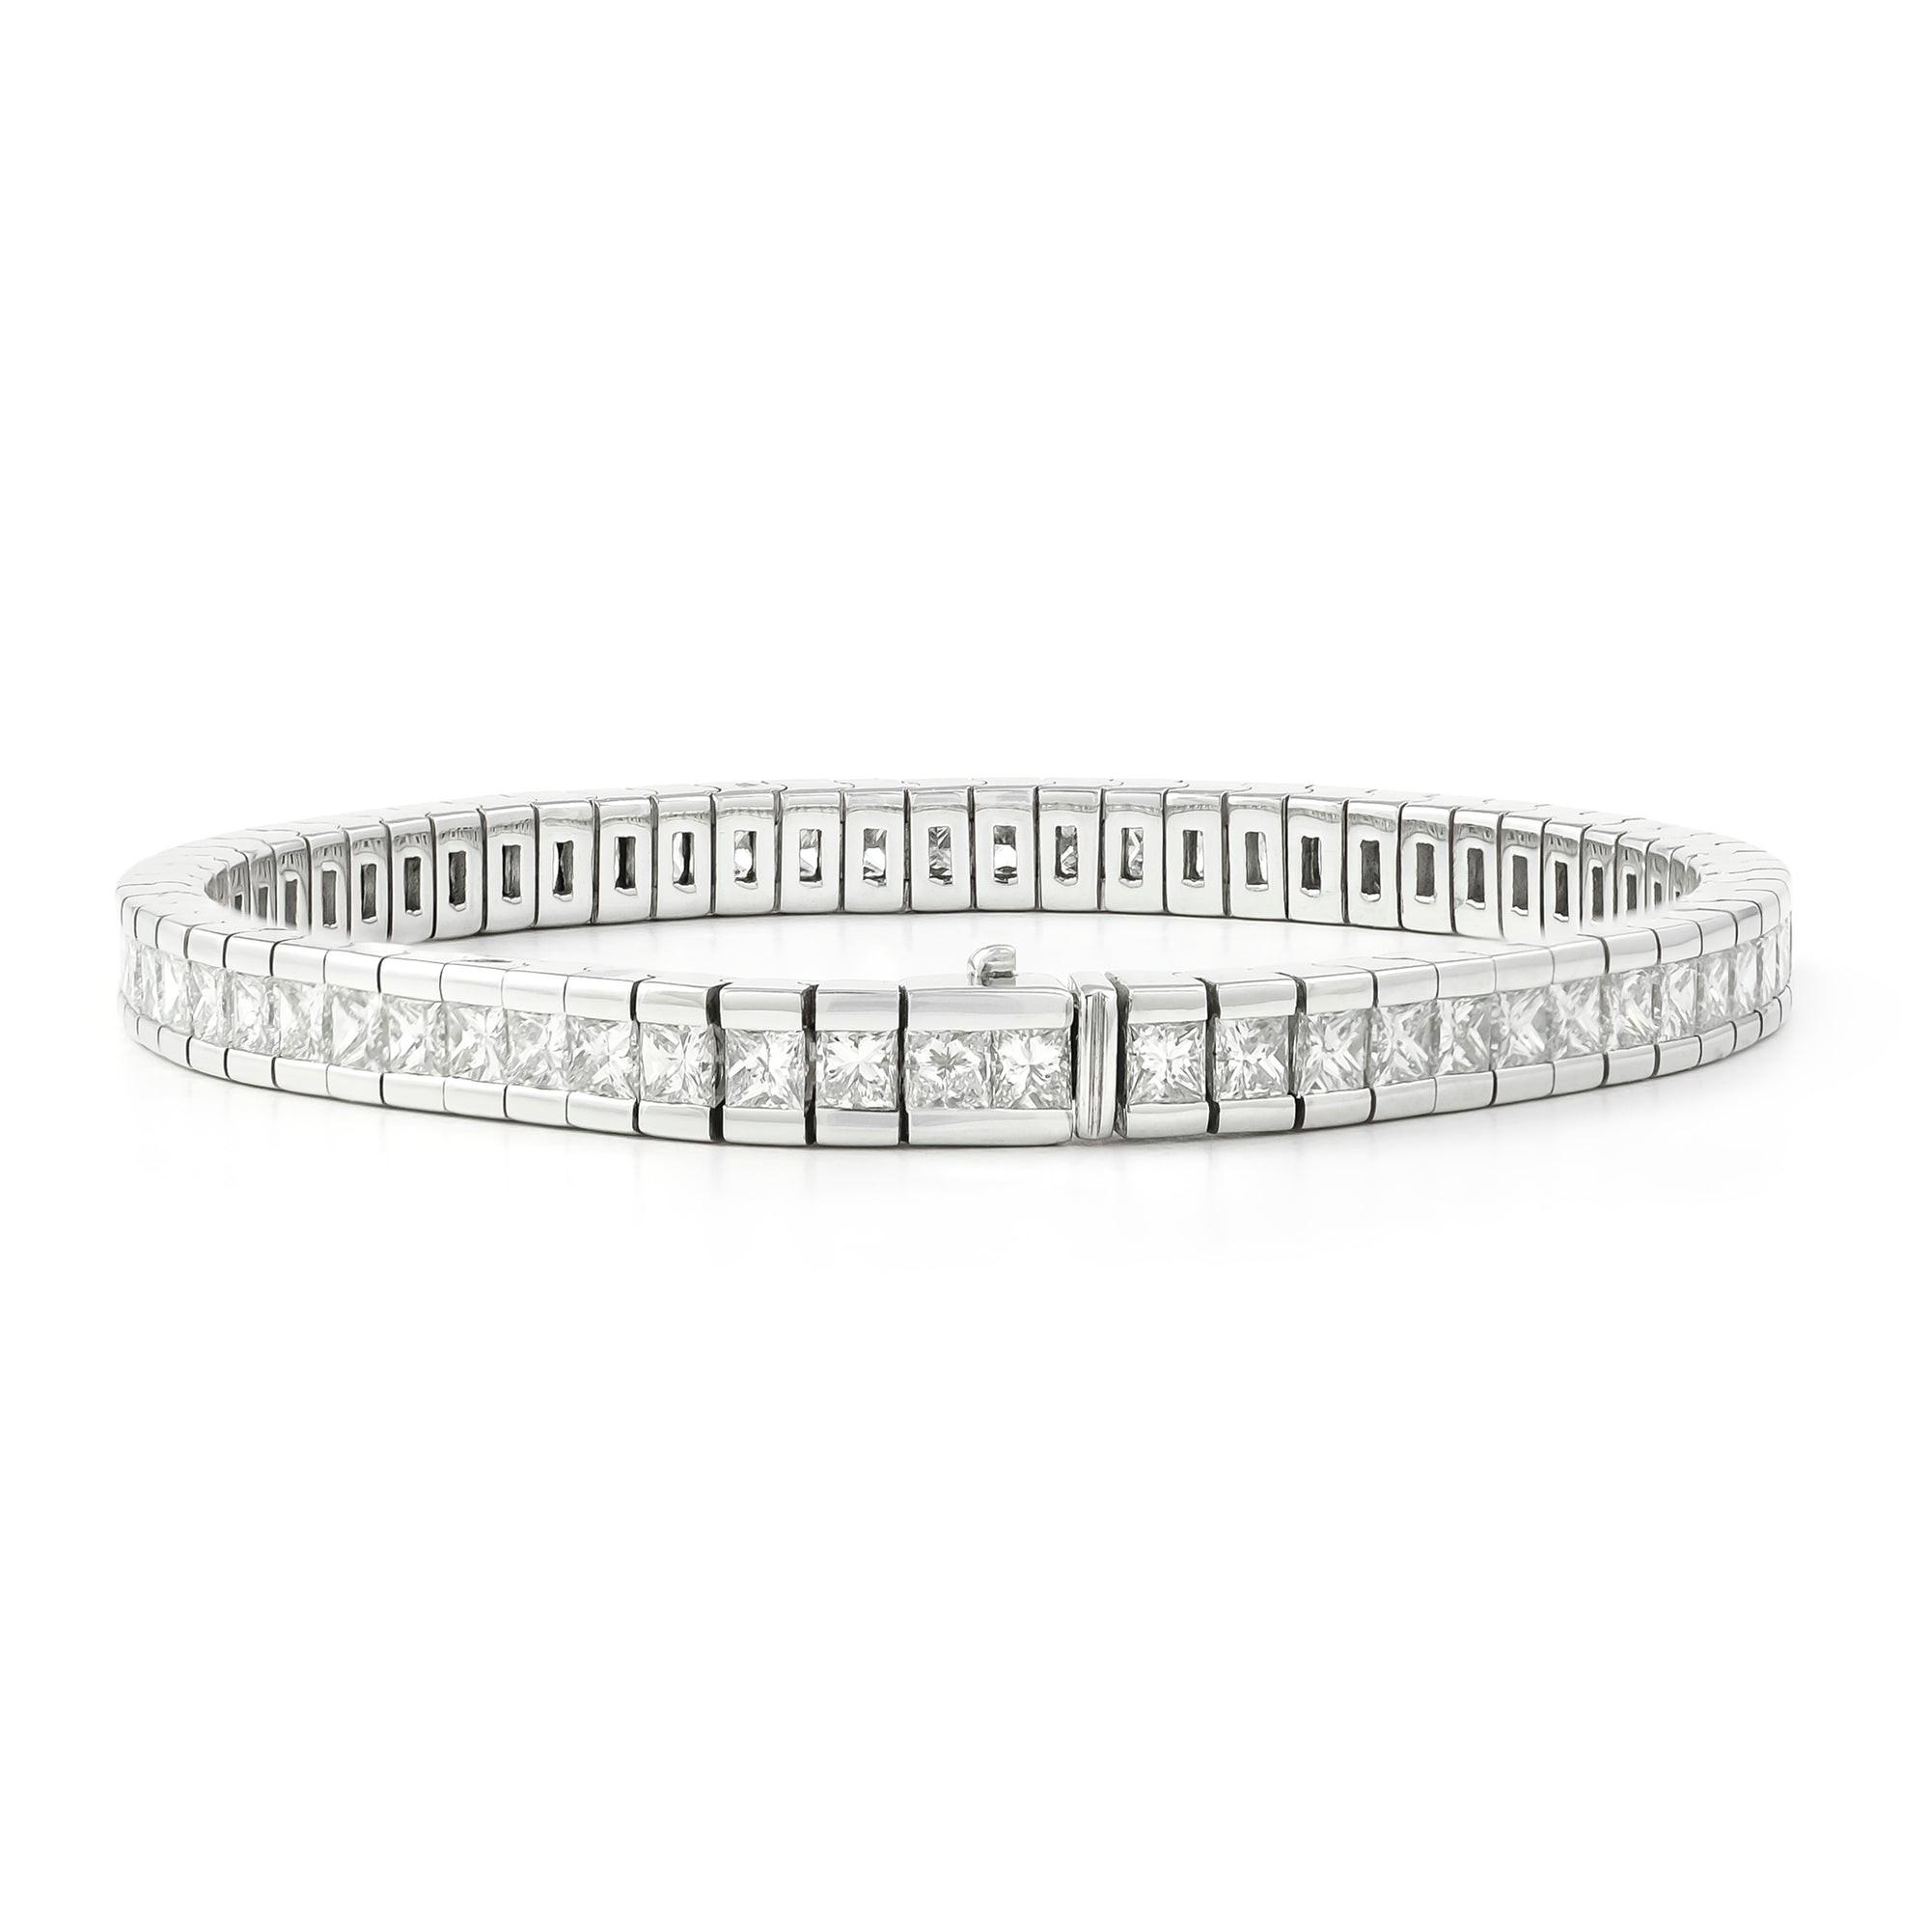 8.50ct 18ct White Gold Diamond Tennis Bracelet